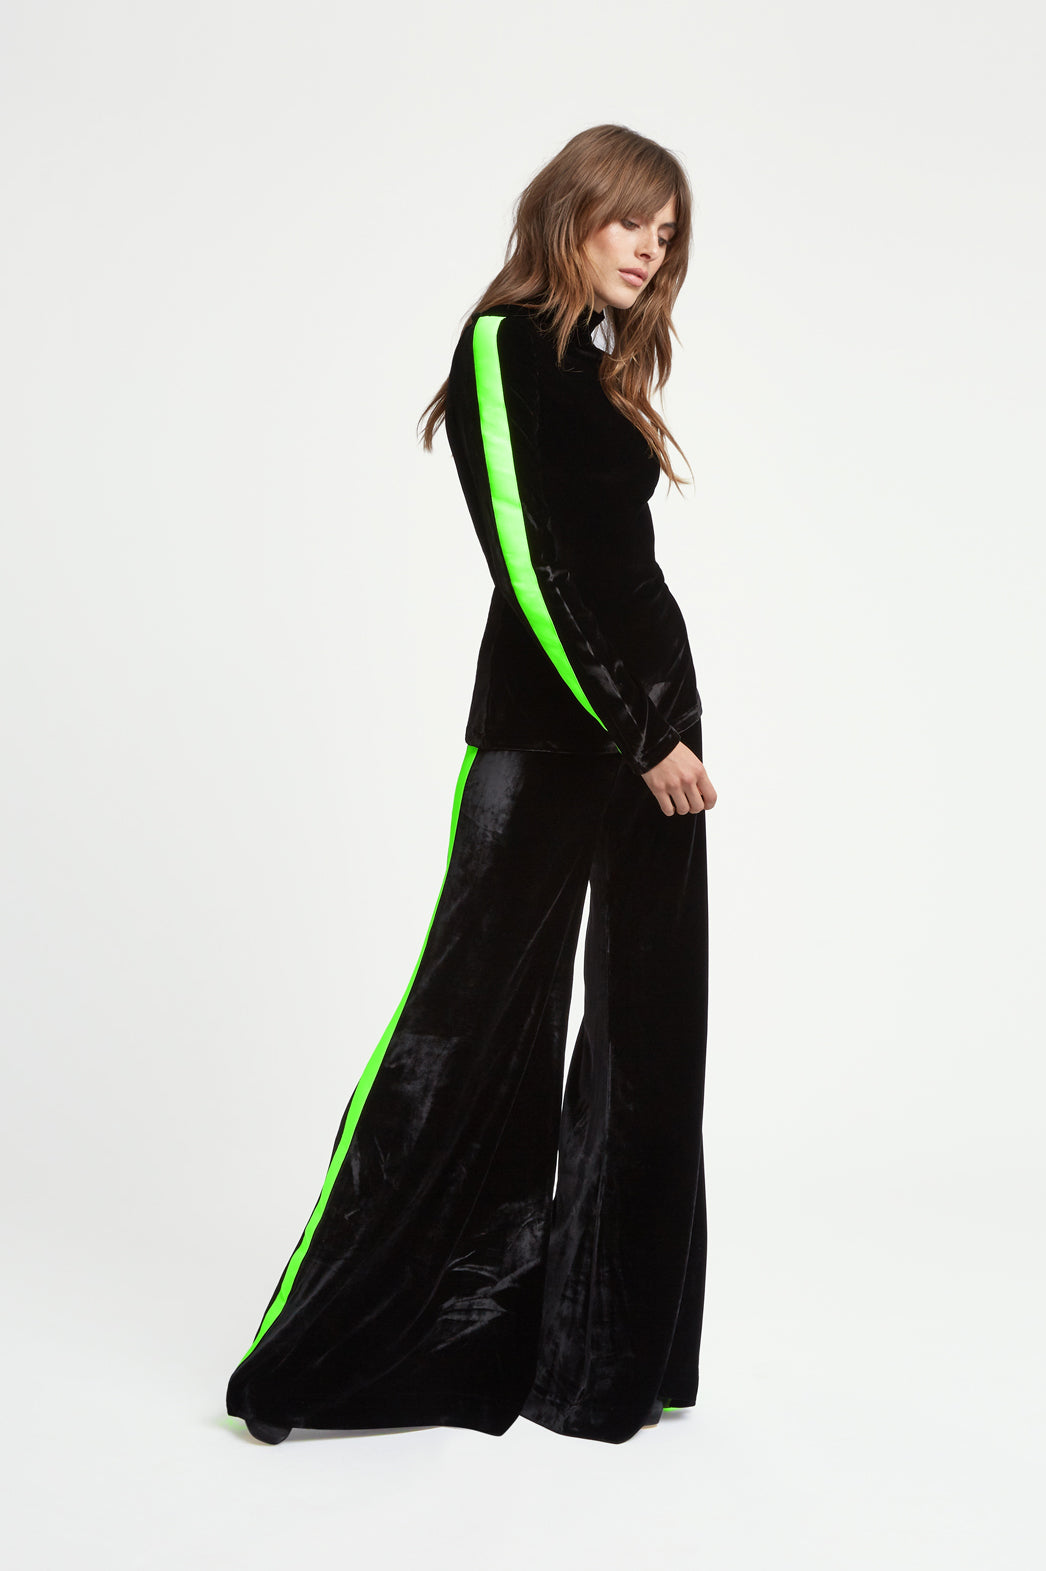 The Flare Trousers - Black & Fluorescent Green Stretch Velvet - SERENA BUTE